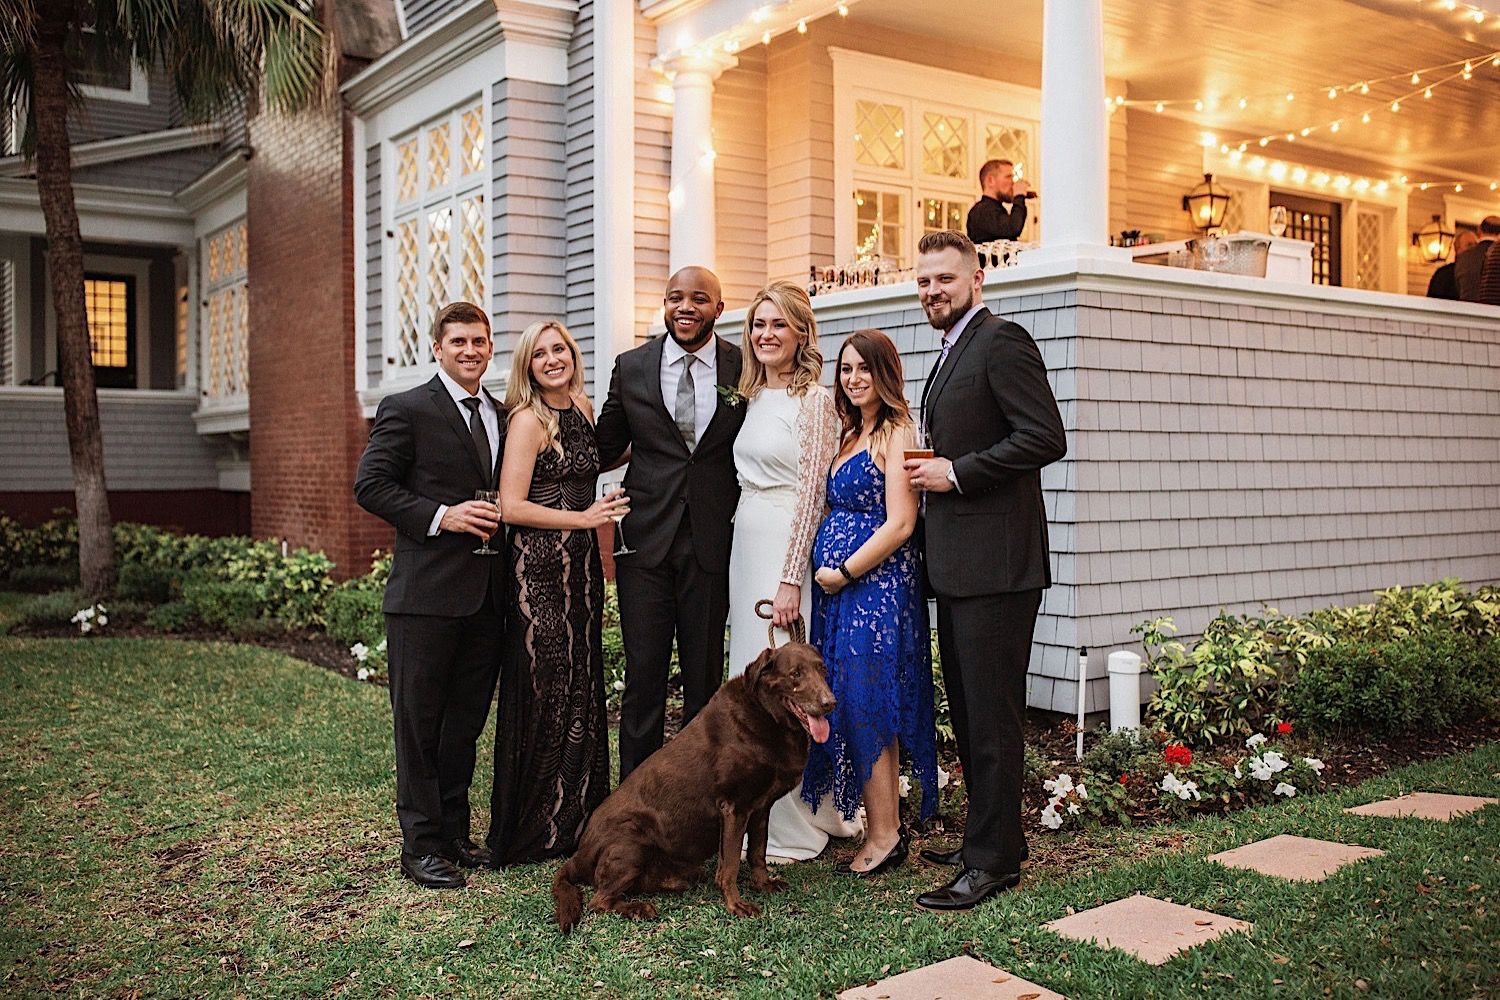 group photo with dog at a wedding at the Orlo in tampa